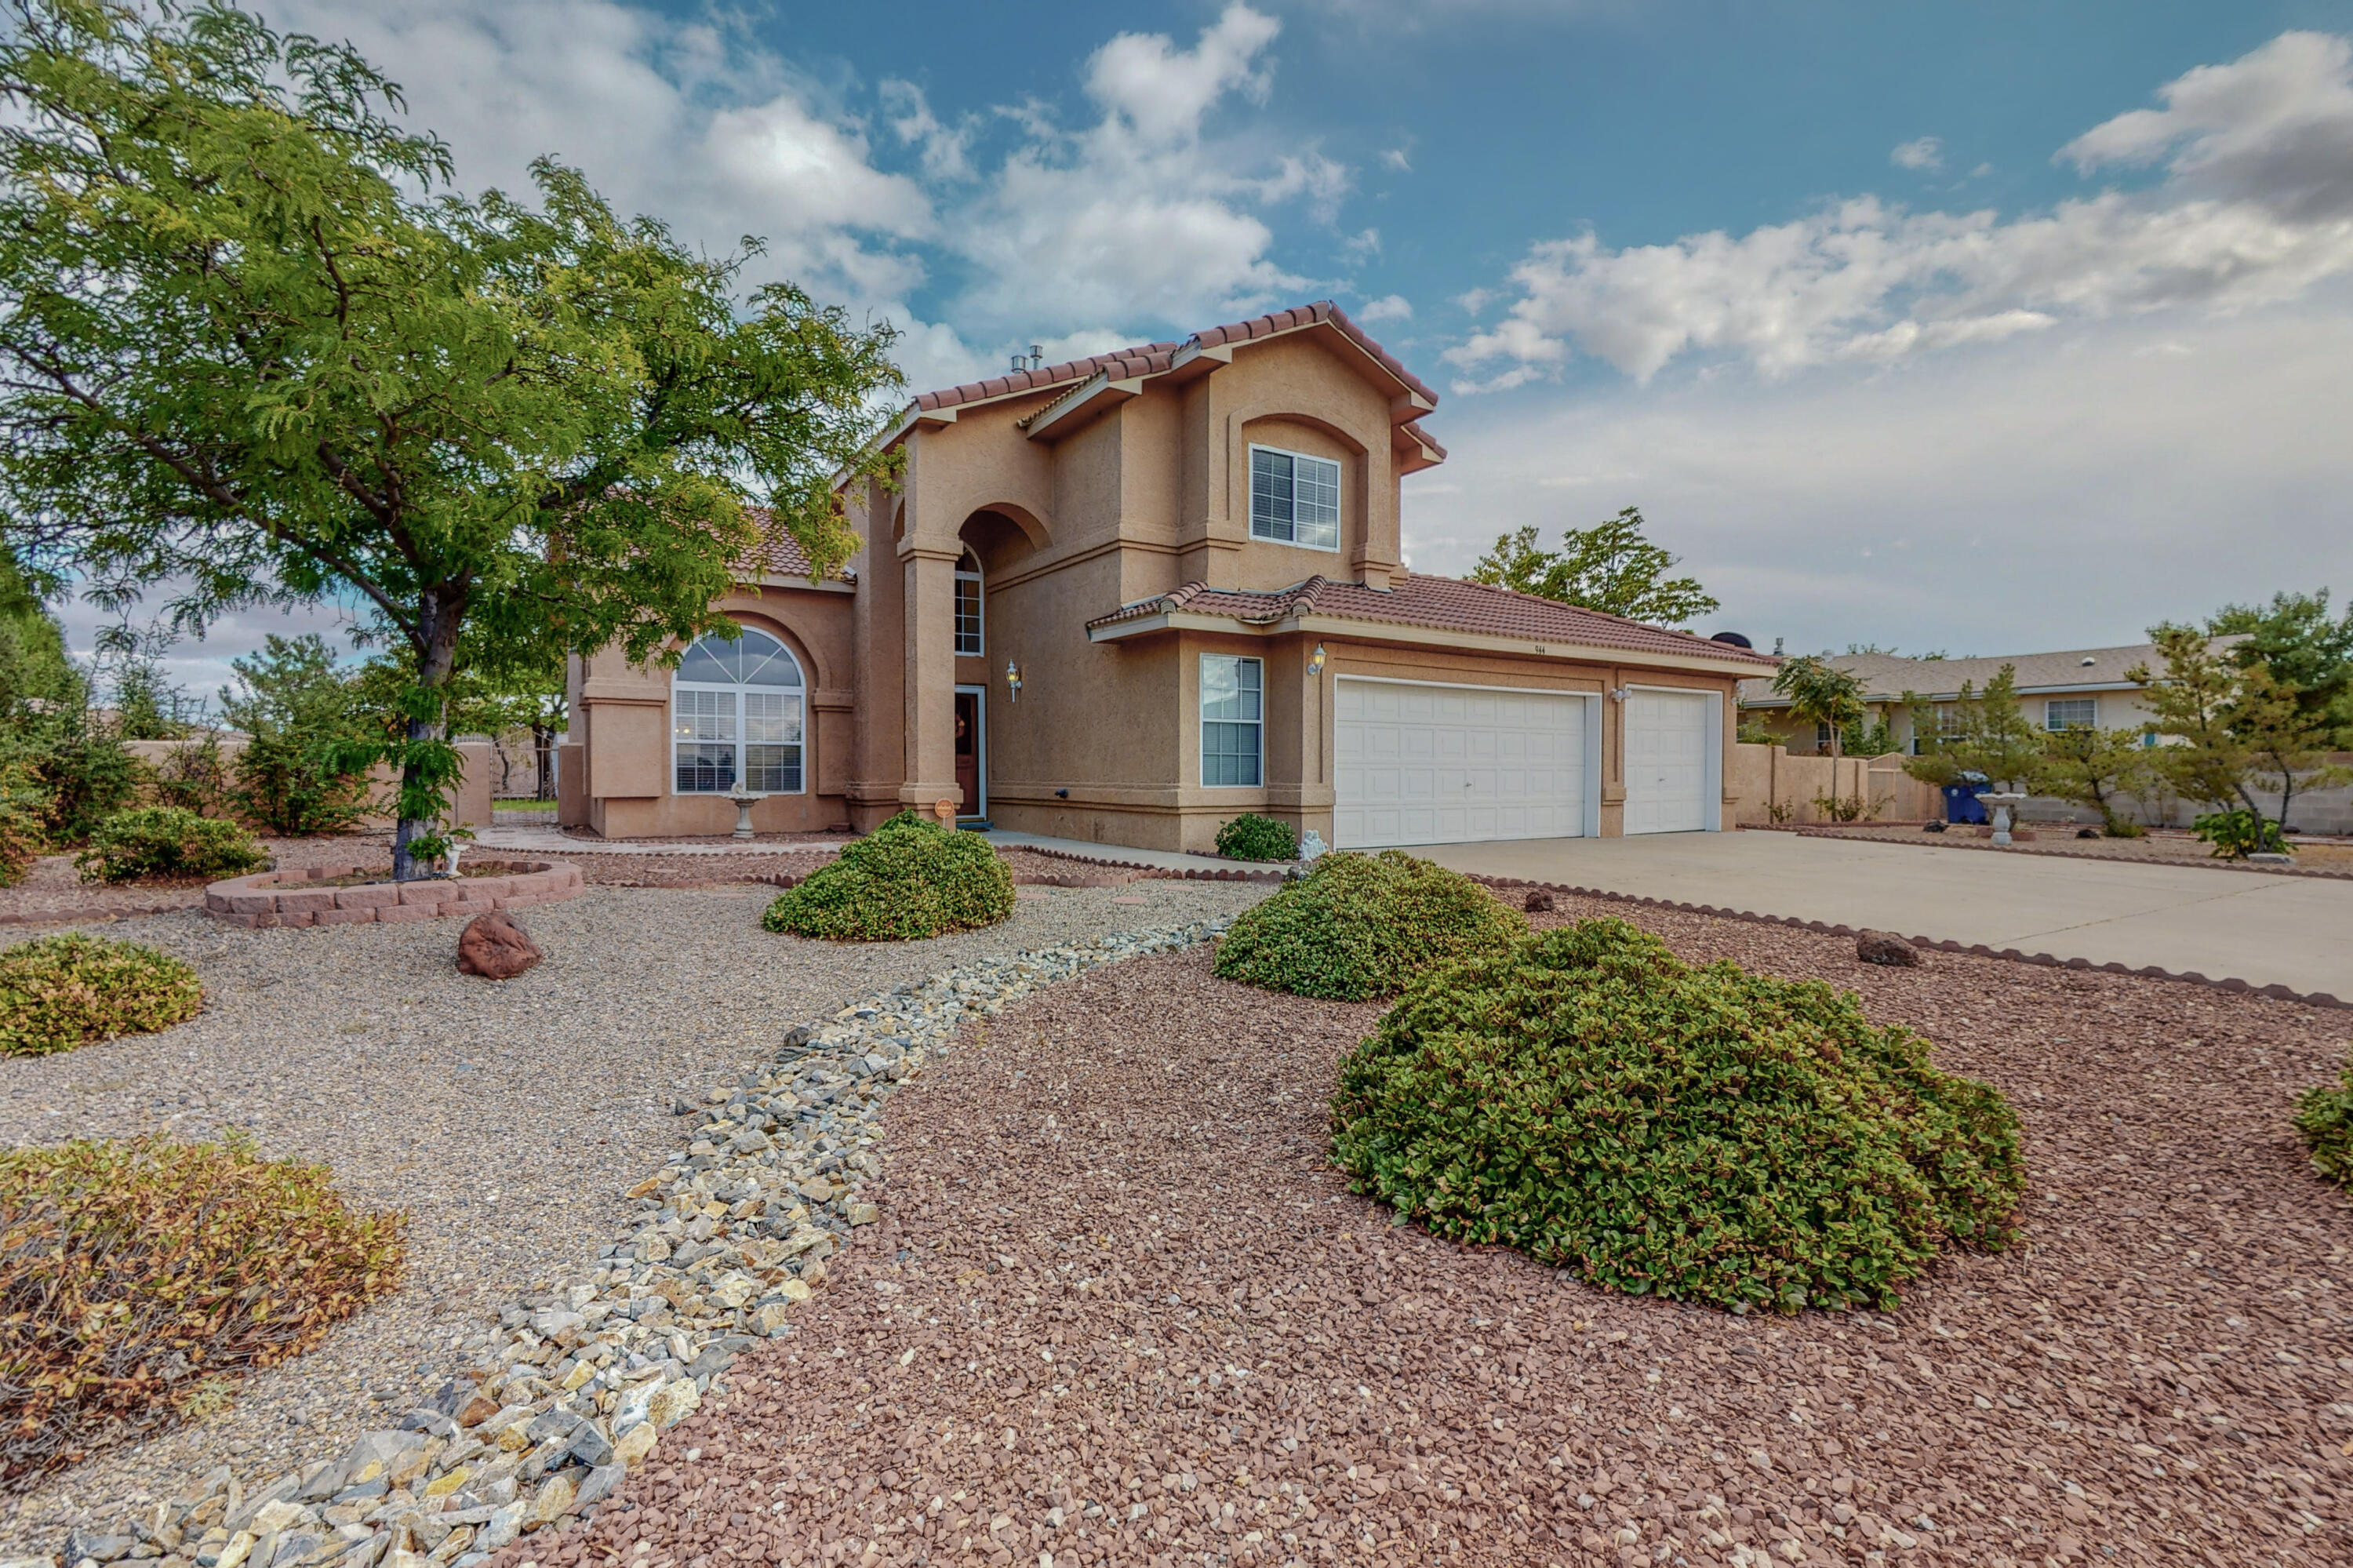 Come see this spectacular custom hilltop home in the sought after Valley View neighborhood of Los Lunas!  This spacious 2,607 sq ft beauty has 4 bedrooms, 3 baths, 2 living spaces & loft. The main bedroom and on suite has a private balcony with incredible views of the valley and mountains. Granite counters and stainless appliances adorne the large kitchen with breakfast nook overlooking the backyard. The oversized 3 car garage has plenty of storage for all your toys. The yard is fenced-in and has been well maintained with fruit trees, lawn and plenty of room for all.  RV parking, gazebo, storage shed and covered carport round out the outdoor space. No flood or HOA. Book your showing today for this dream home!